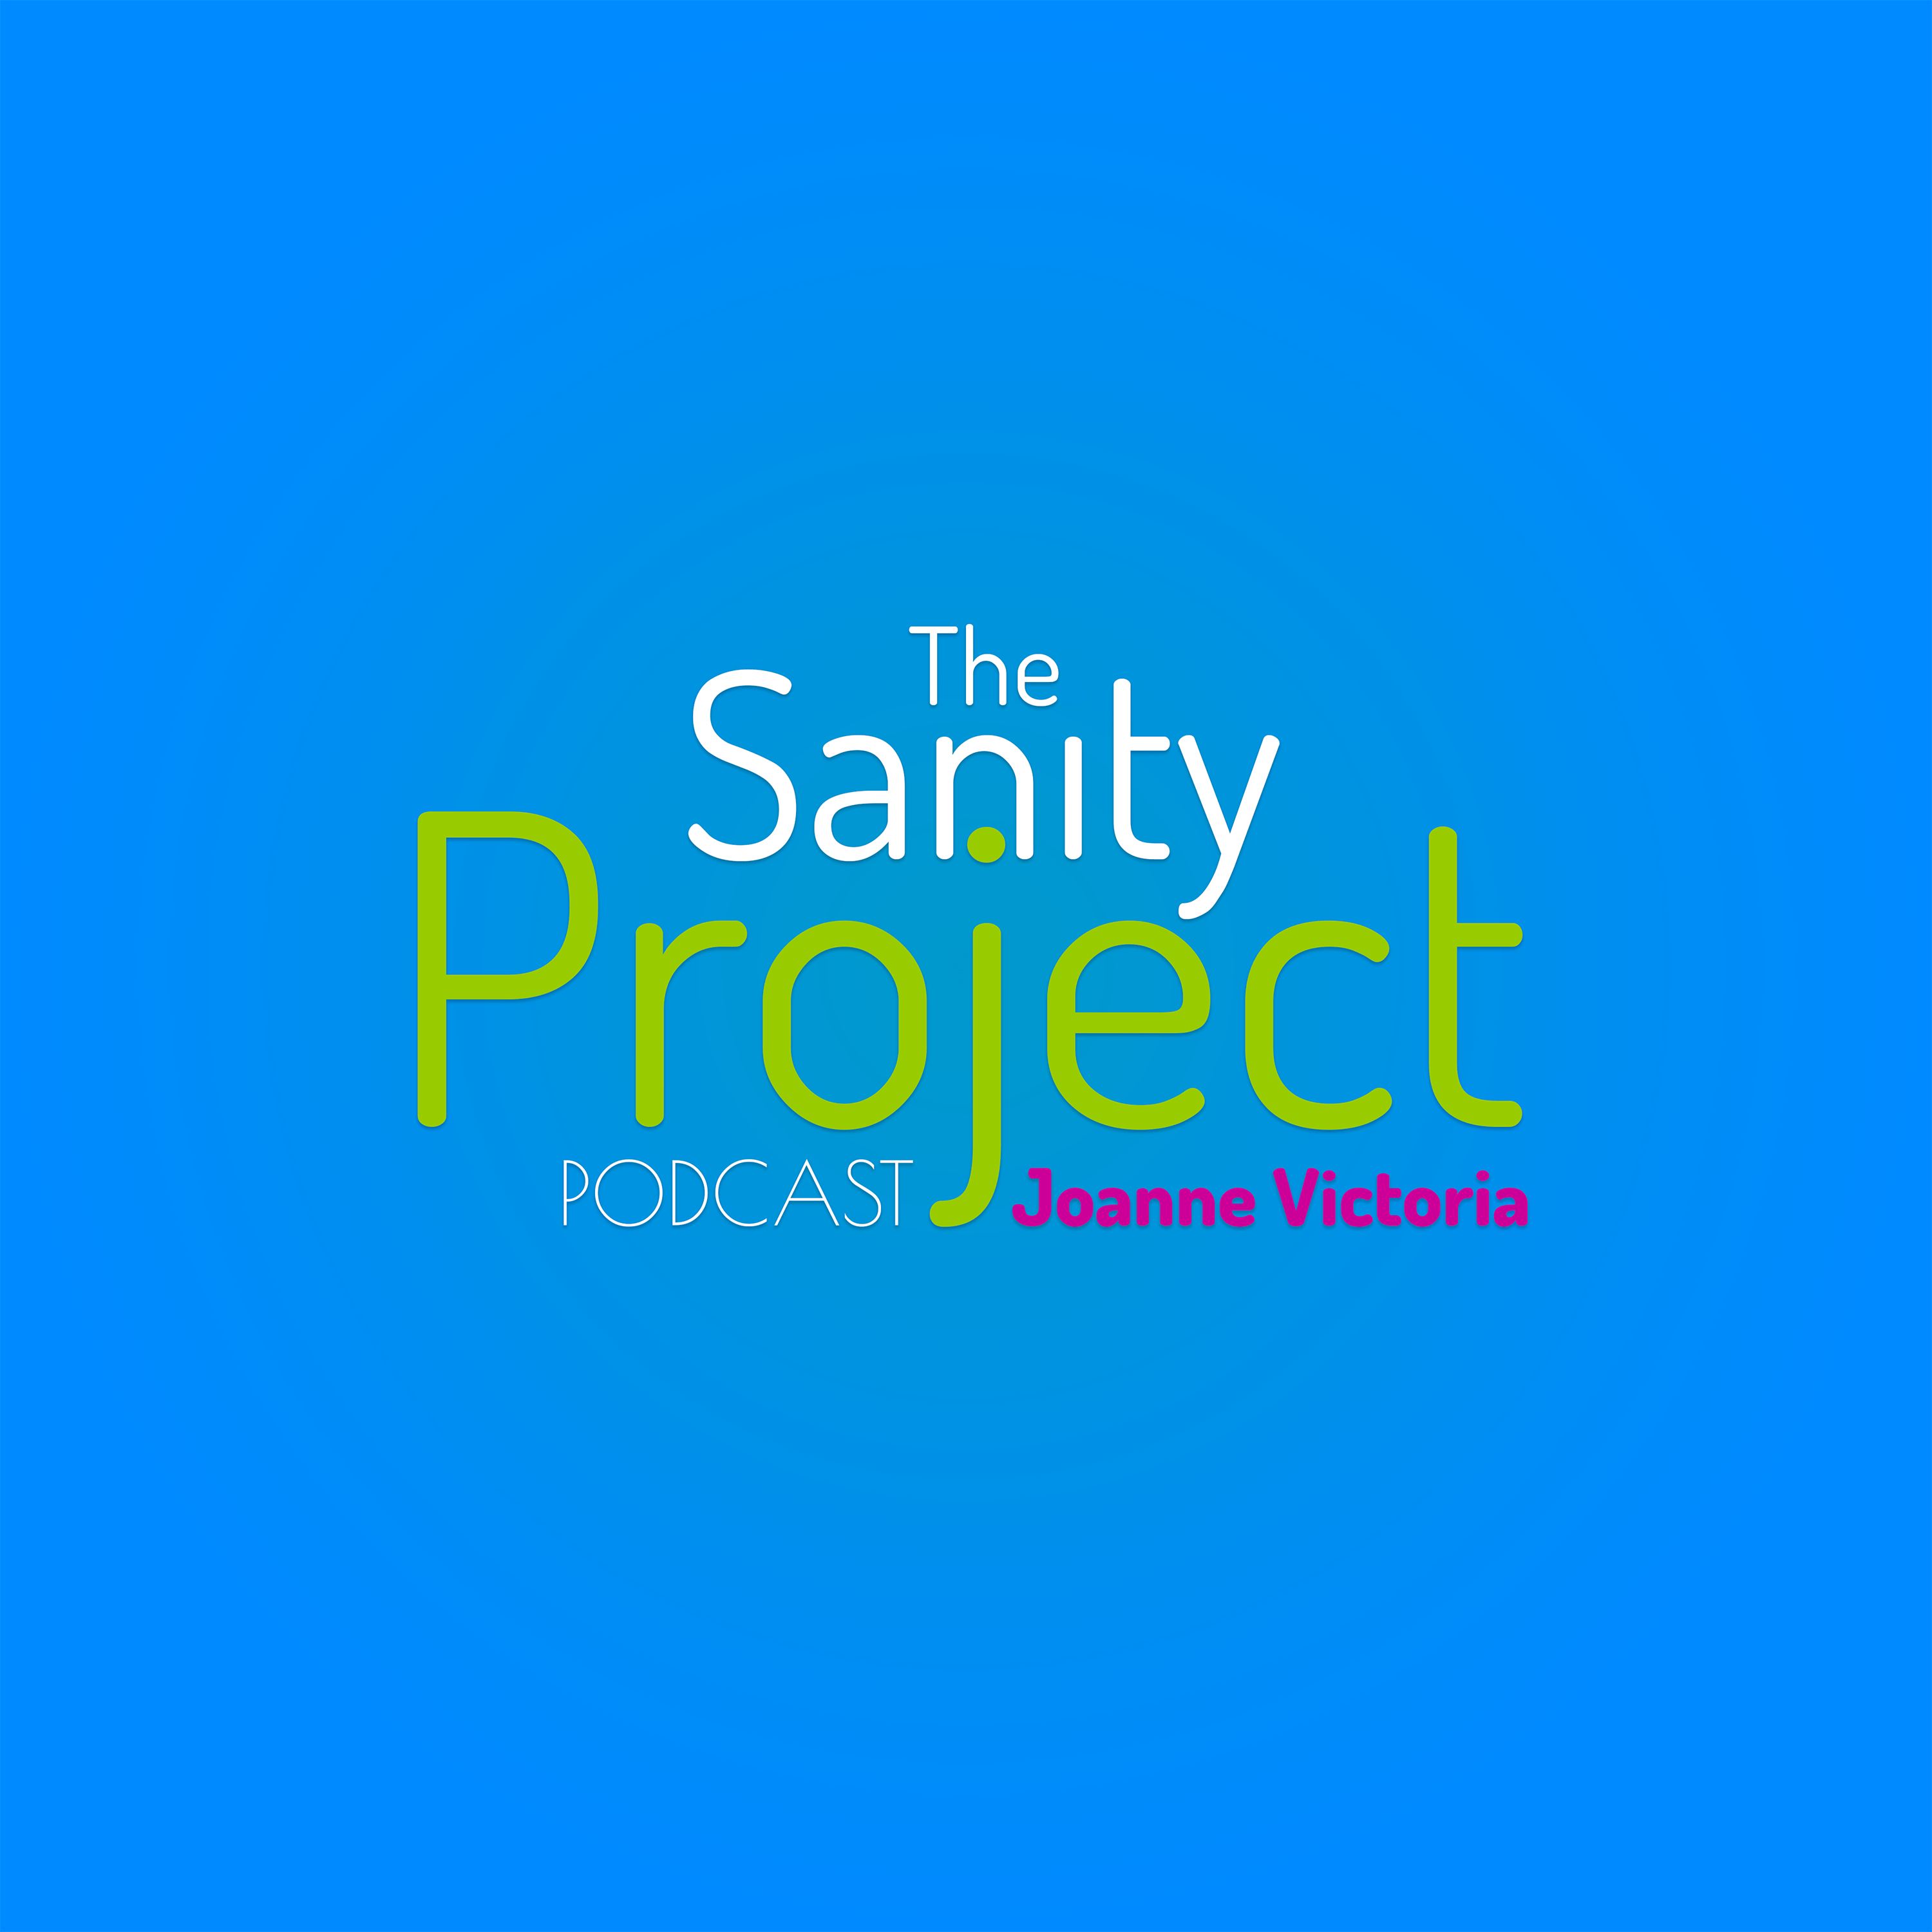 The Sanity Project Podcast with Joanne Victoria